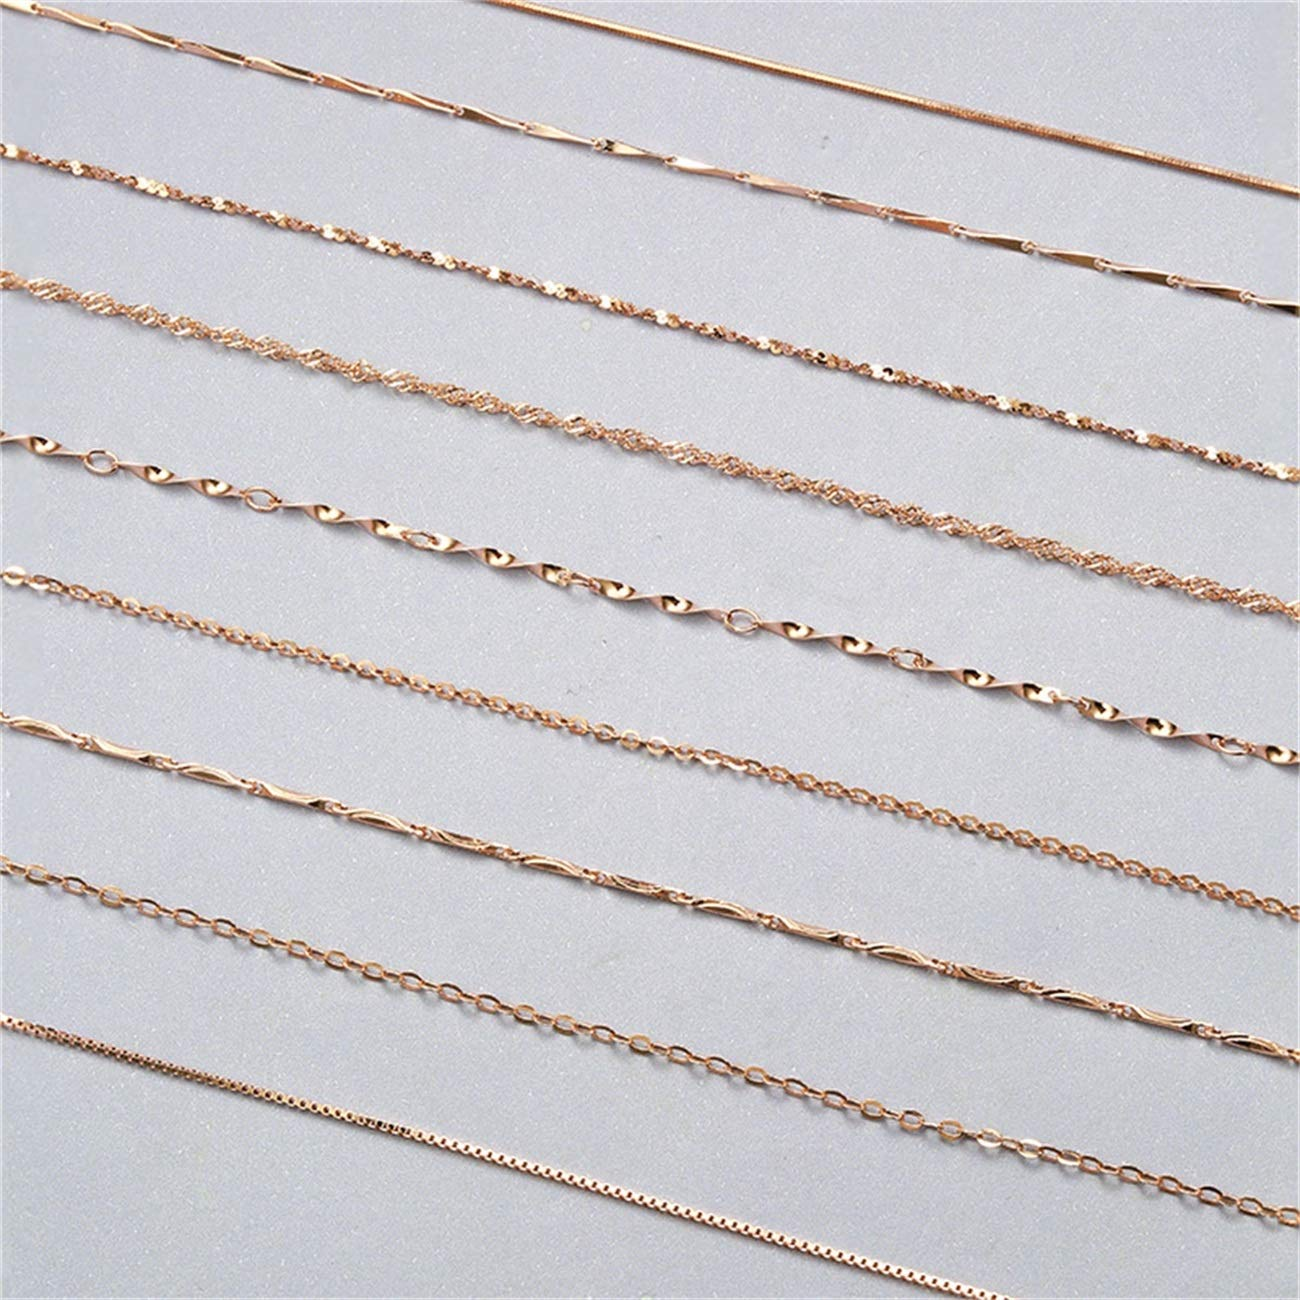 JOQSI 100/% 925 Sterling Silver Water-Wave Chain for Woman 40Cm//45Cm 0.7//0.8Mm Chain Necklace Gold//Rose Gold Color GSC2 Gold 5 40cm